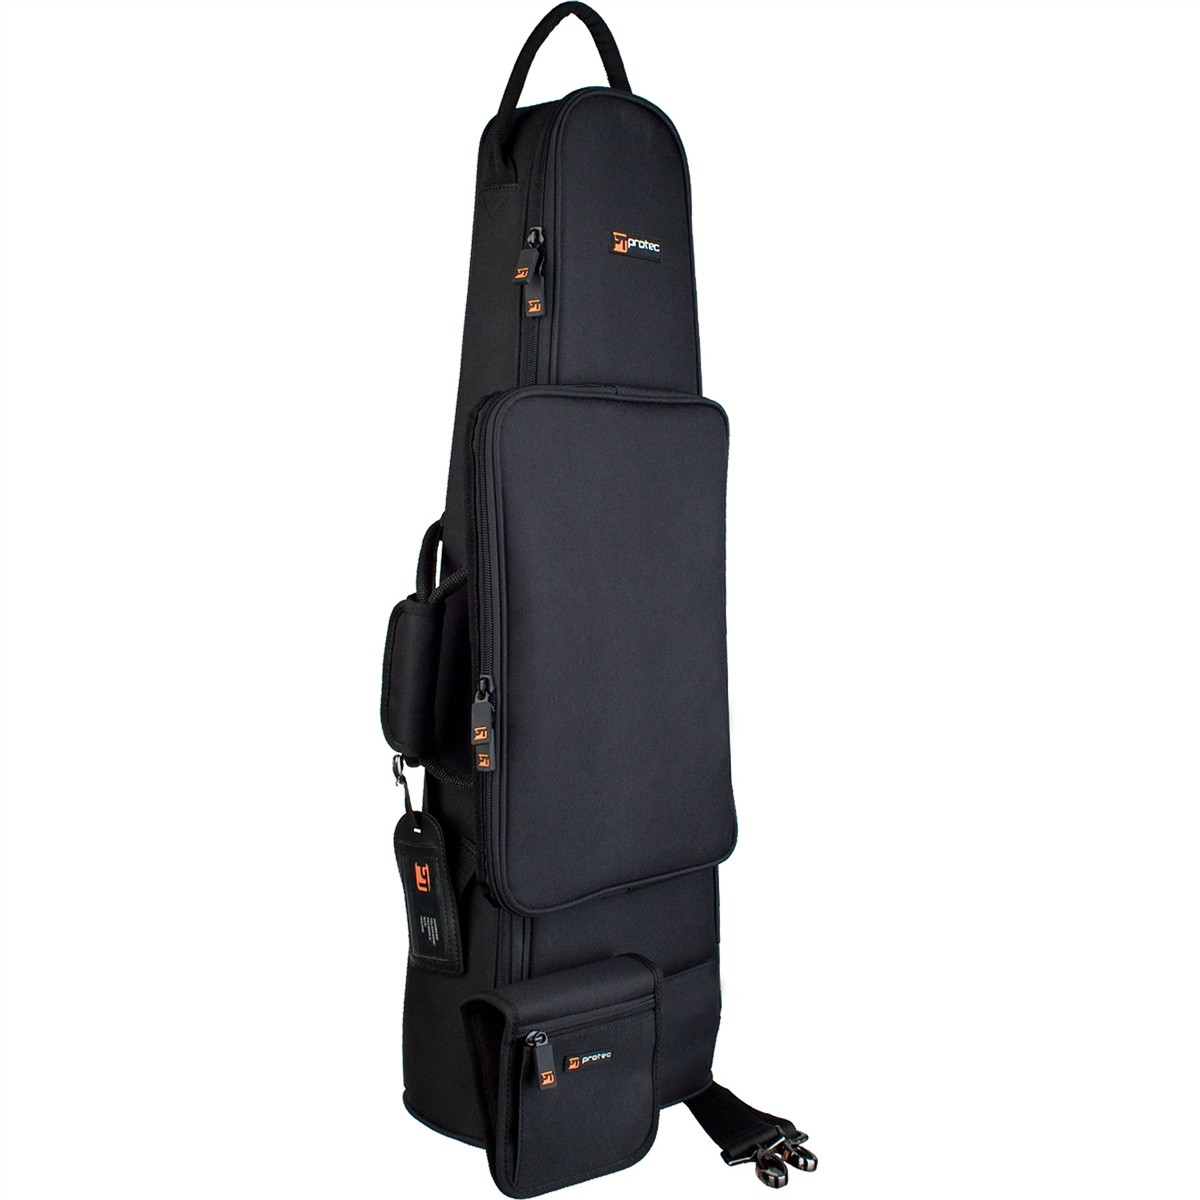 Protec Straight Soprano Sax/Clarinet/Flute Combination Bag - Gold Series (C250)